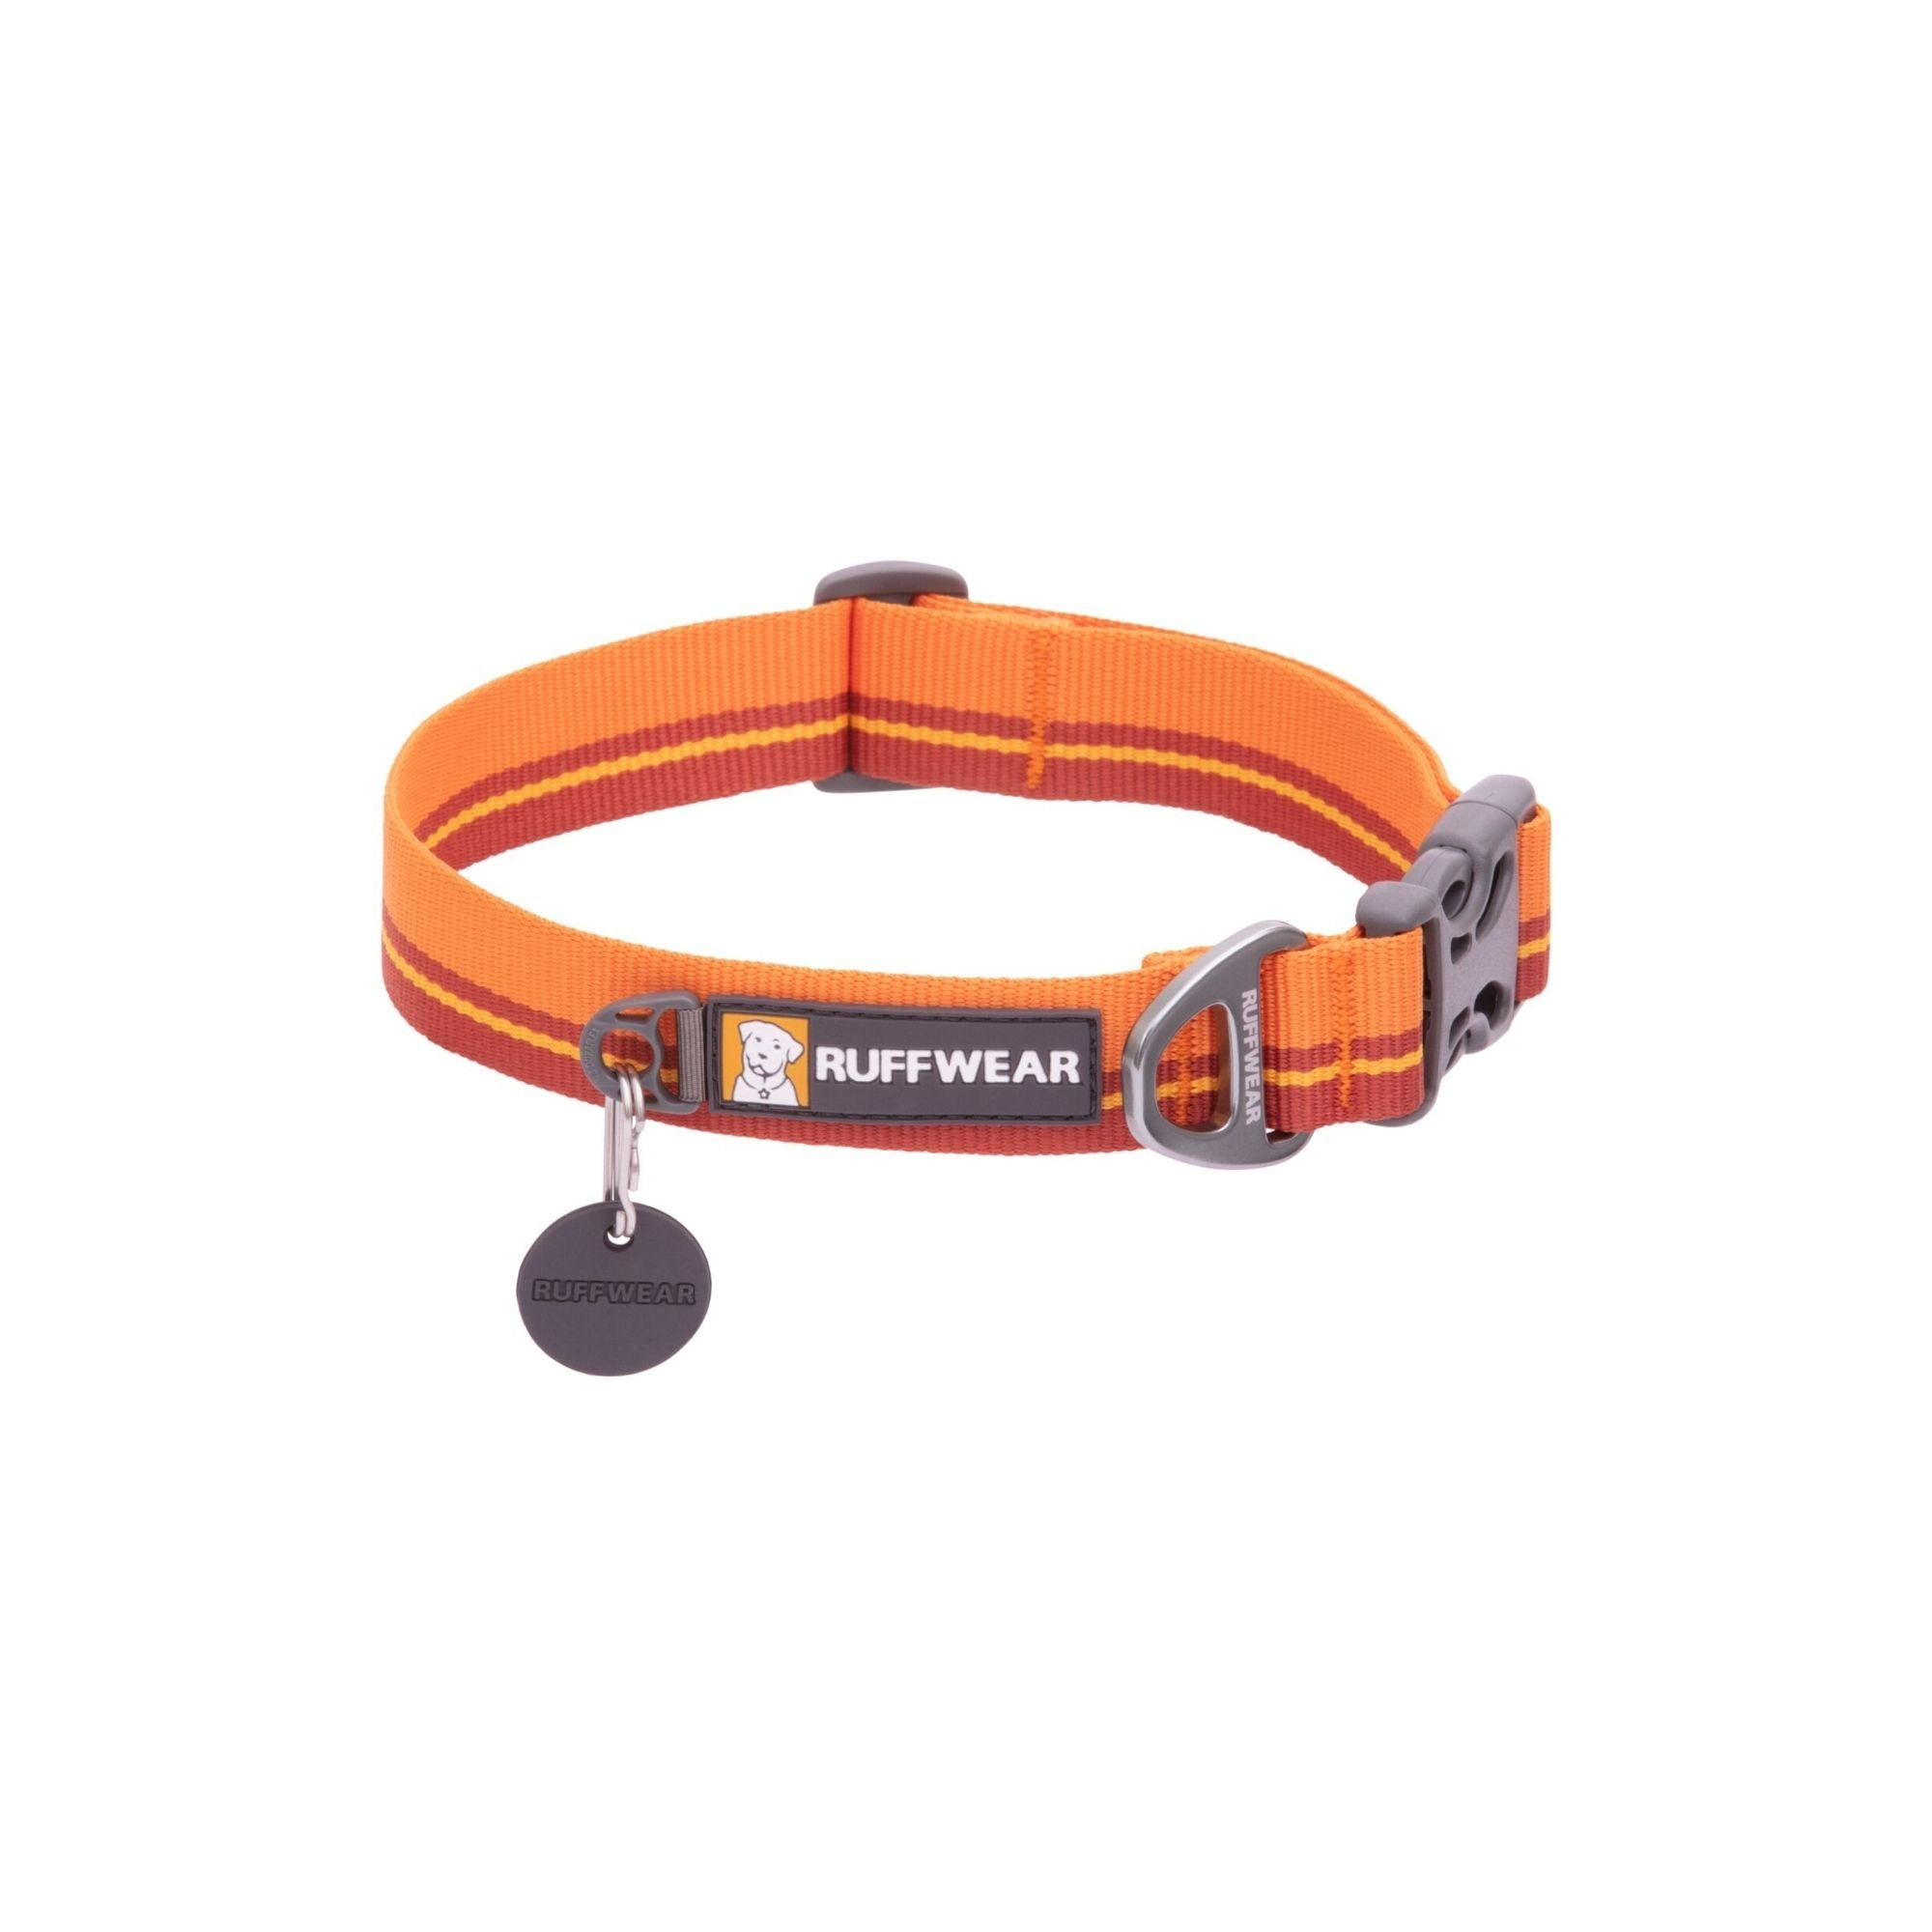 Ruffwear Flat Out Dog Collar | Barks & Bunnies